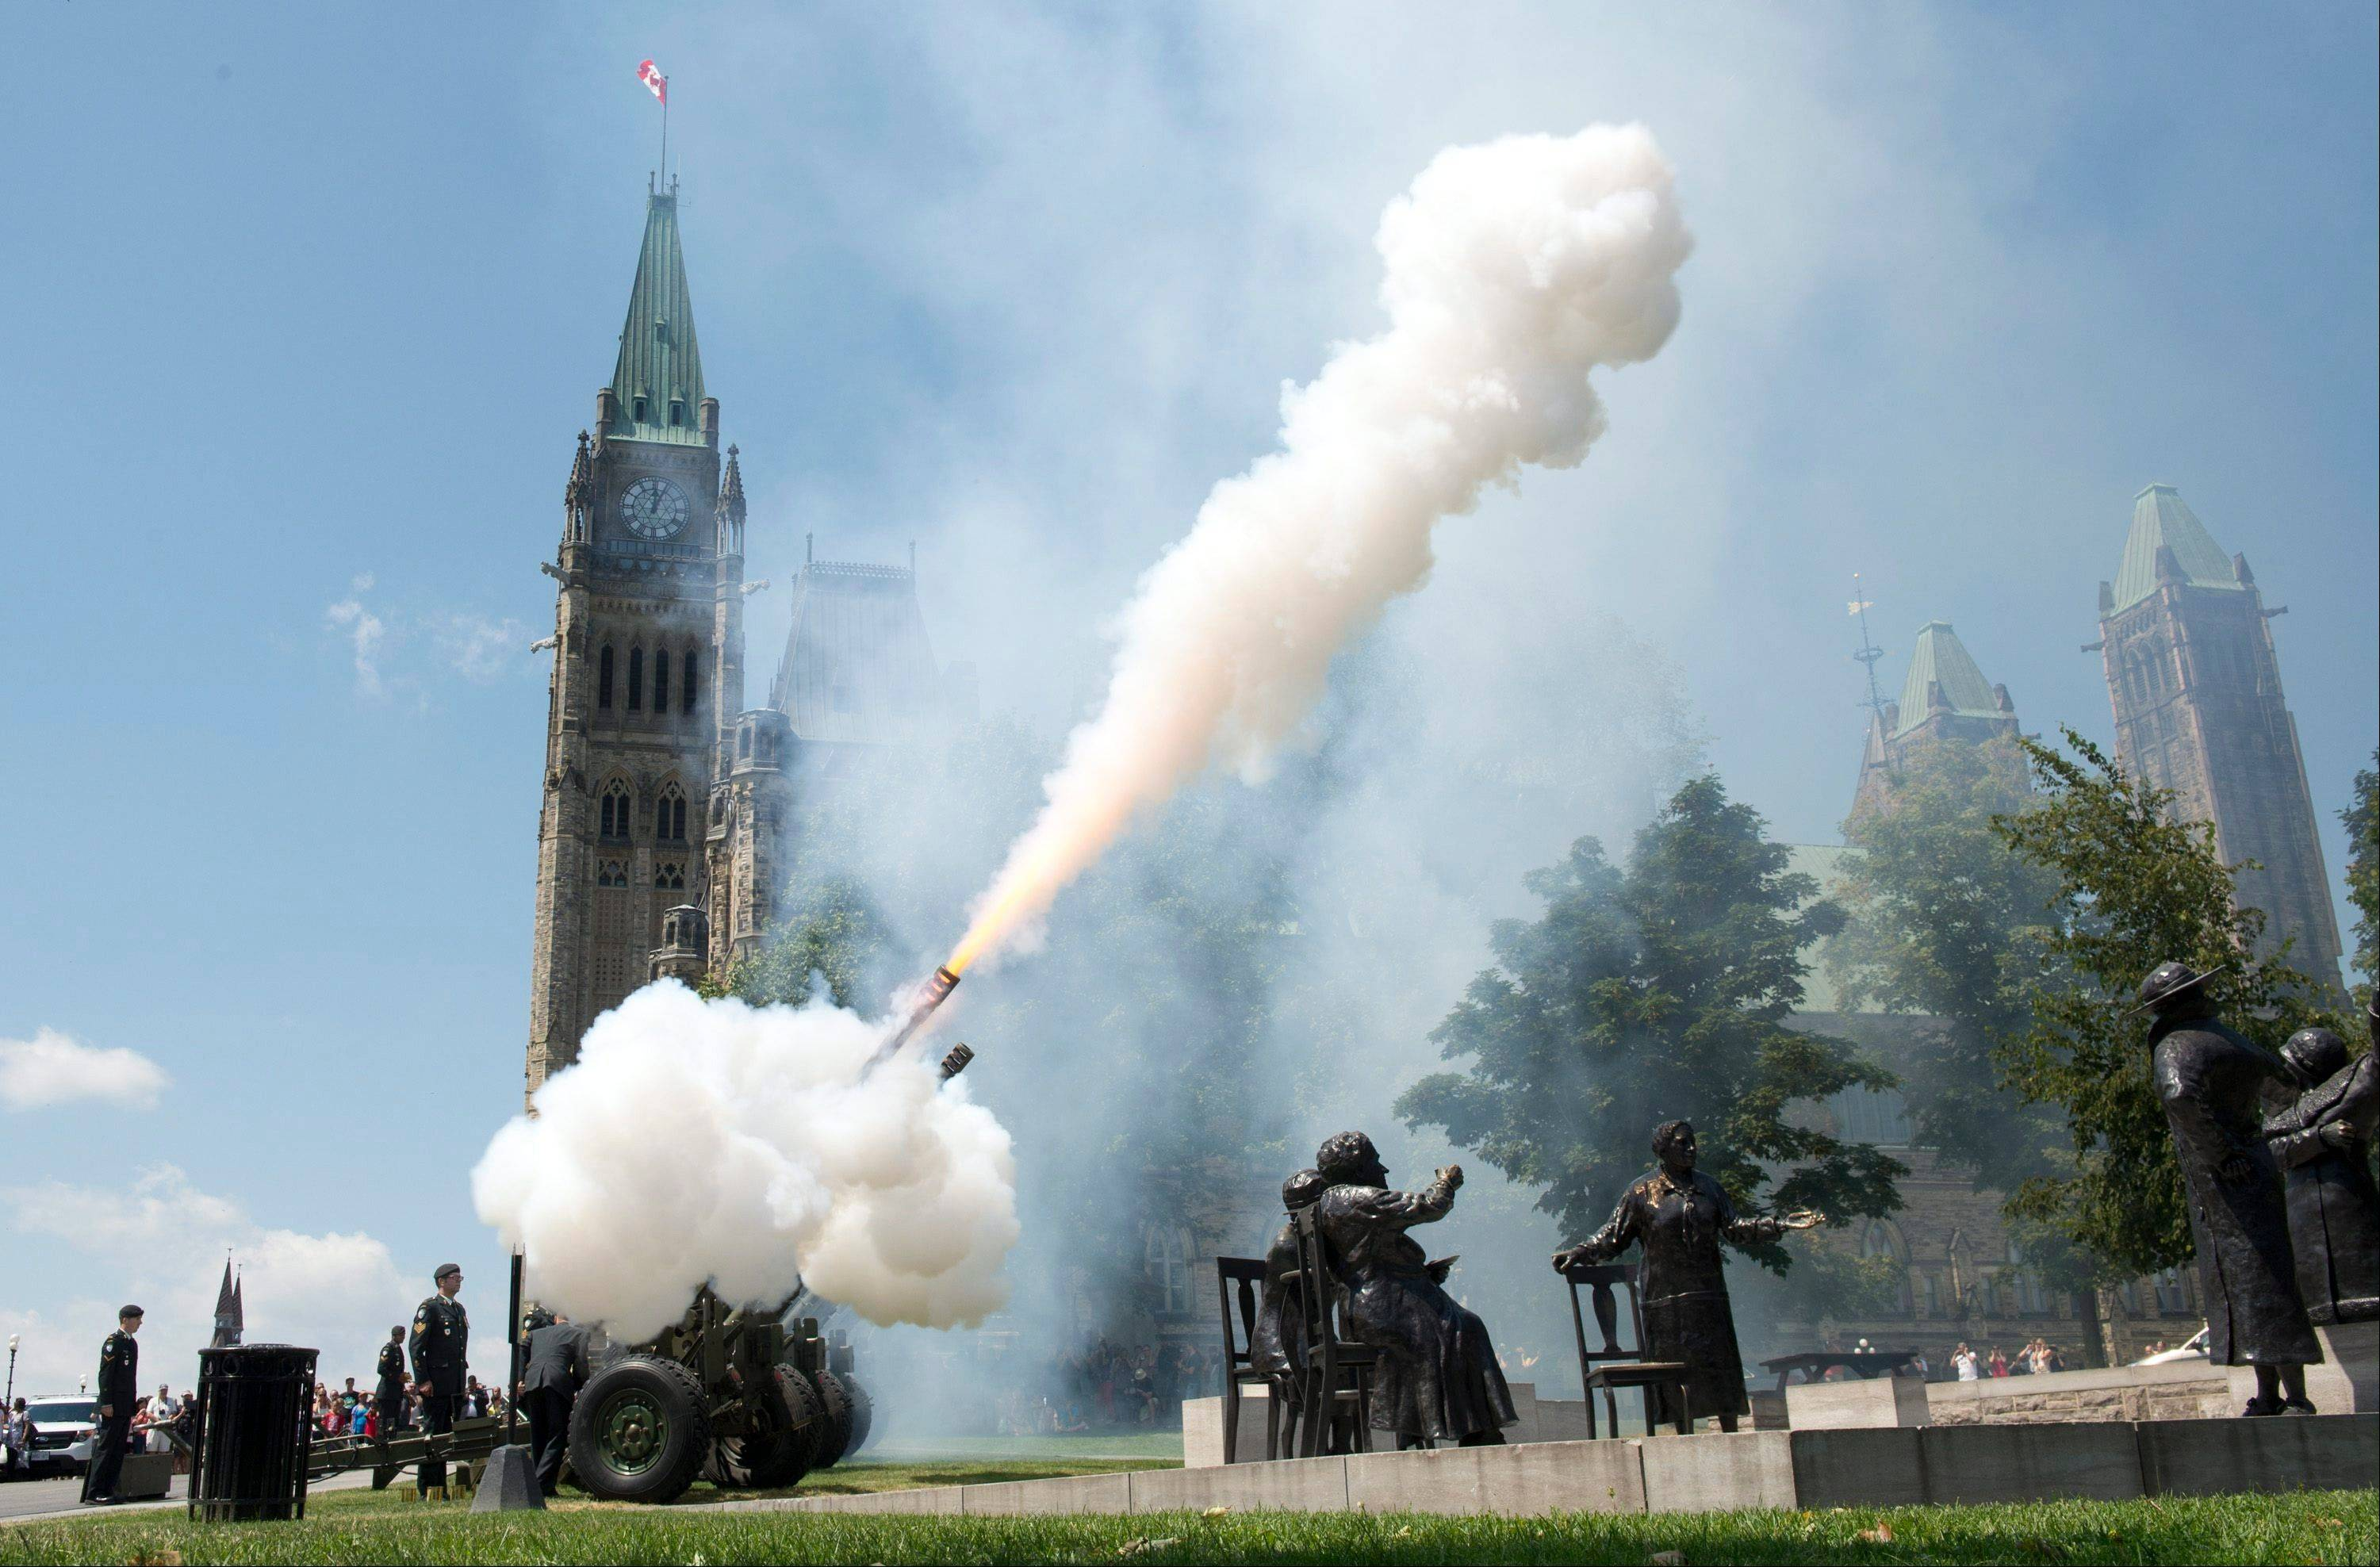 Using Four C3 Howitzers,l members of the 30th Field Regiment, Royal Canadian Artillery, fire a 21-gun Royal Salute in recognition of the birth of the Royal baby Tuesday July 23, 2013 on Parliament Hill in Ottawa.